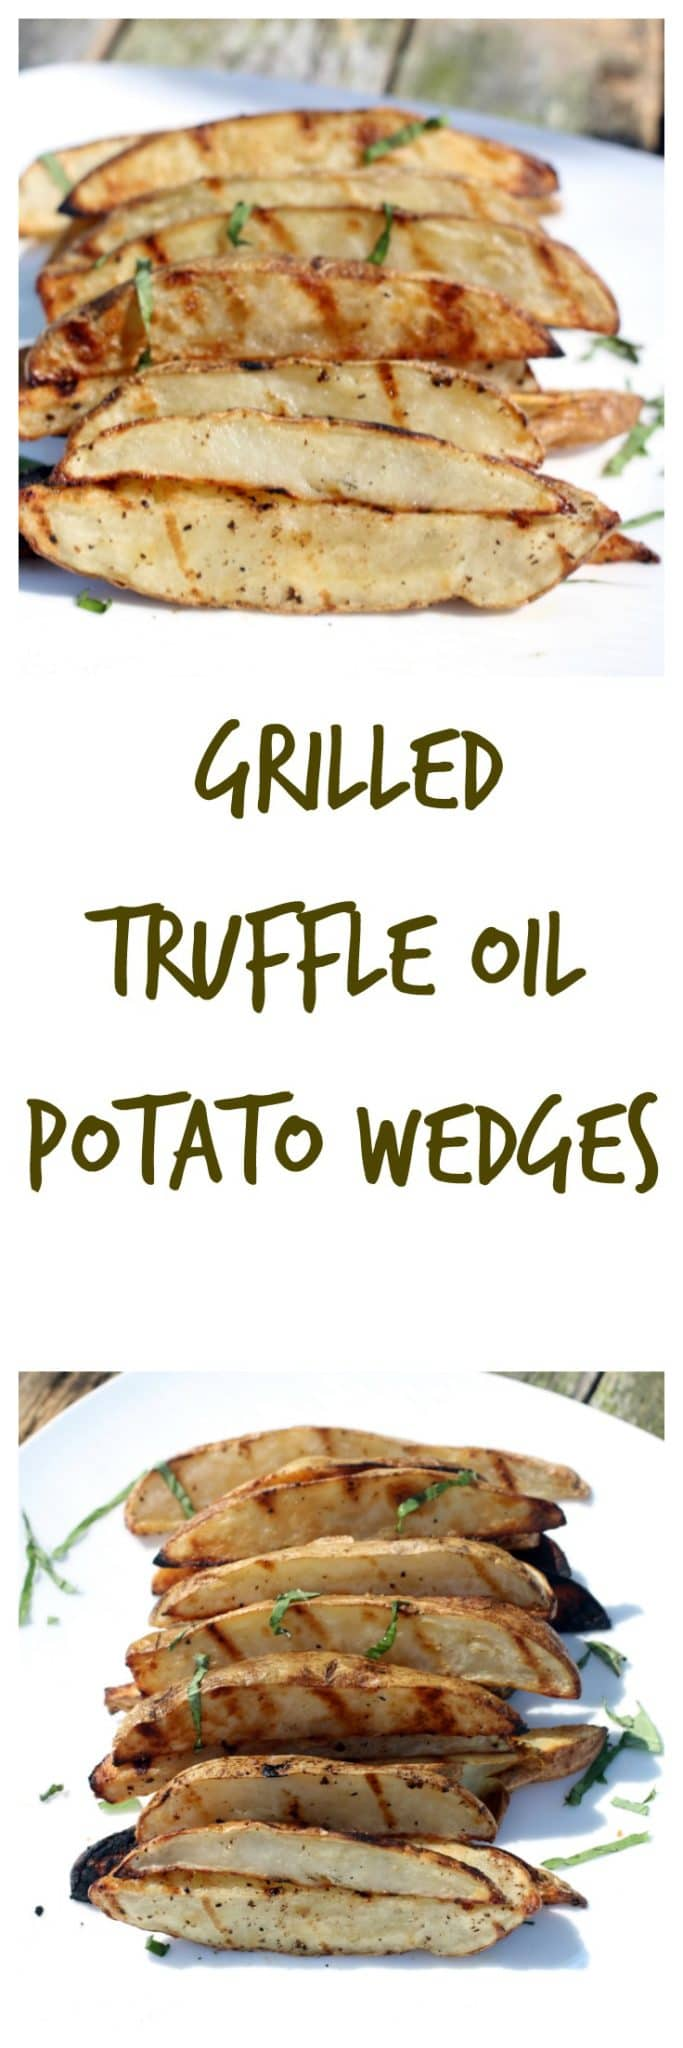 grilled truffle oil potato wedges